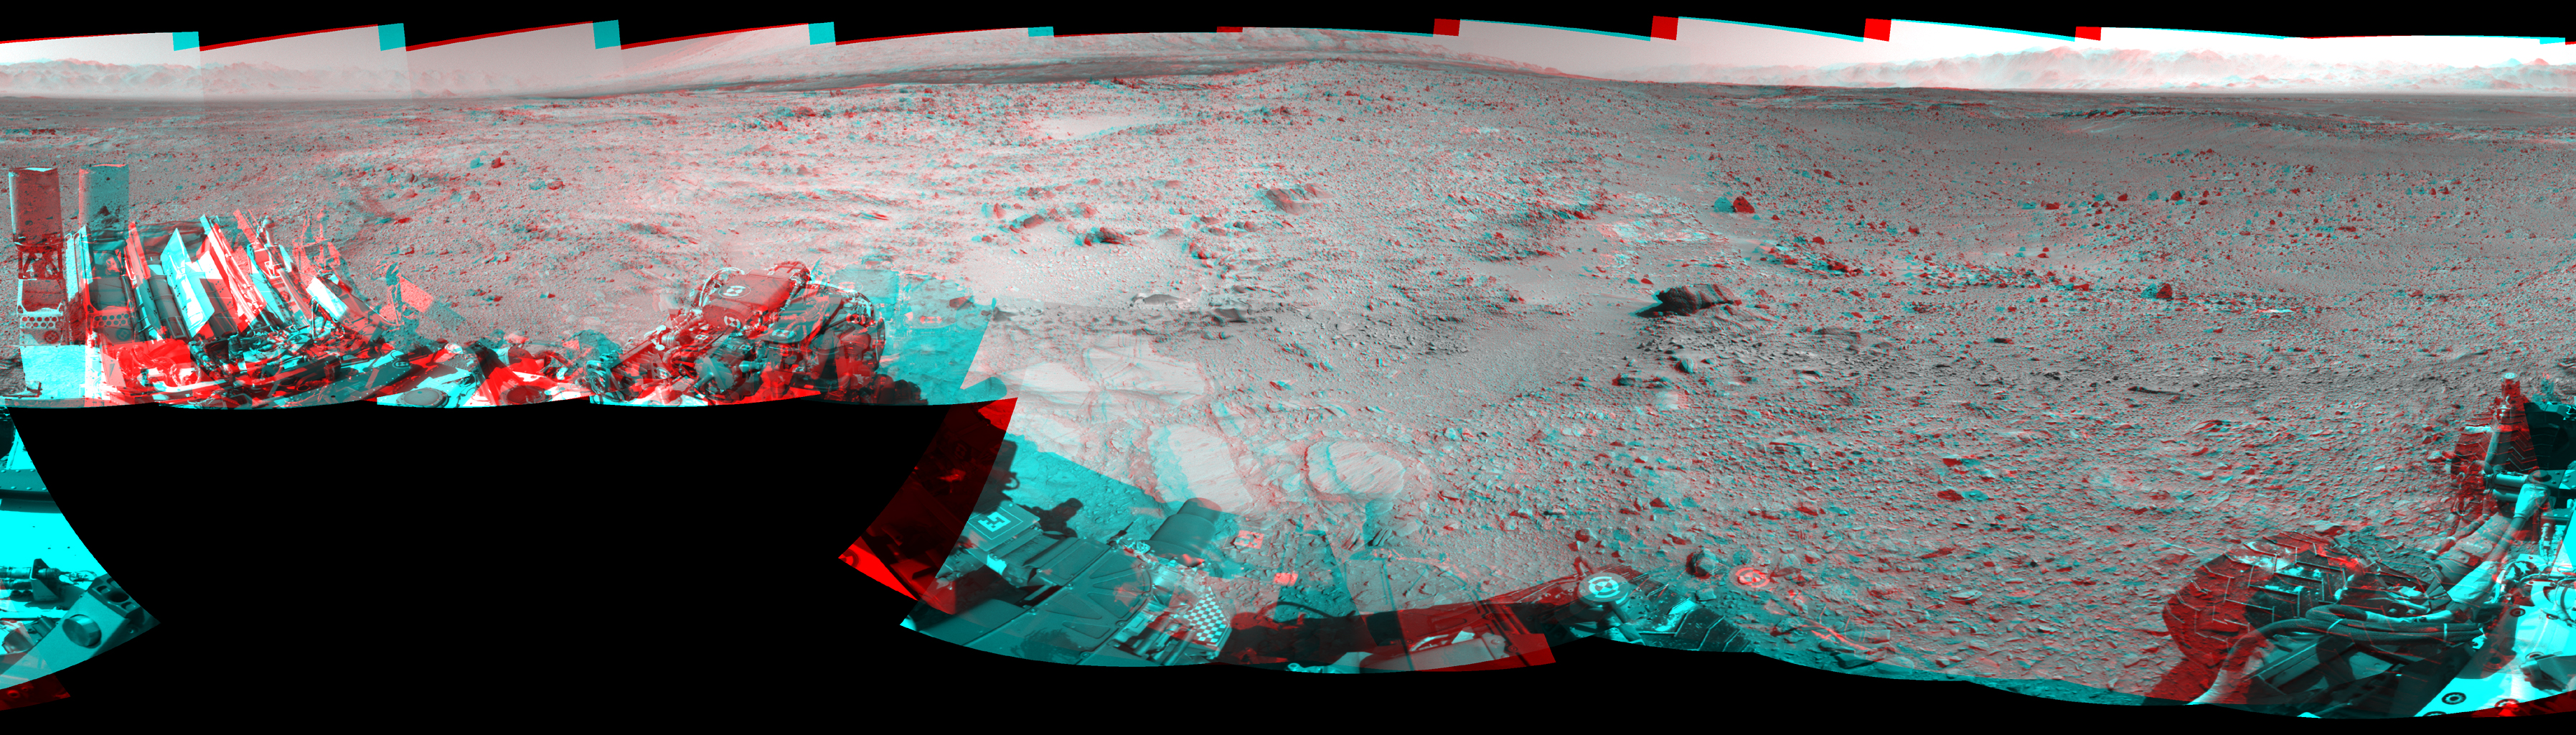 NASA's Mars rover Curiosity captured this 3-D view of the rock-studded terrain Curiosity has traversed since October 2013, accelerating the pace of wear and tear on the rover's wheels.